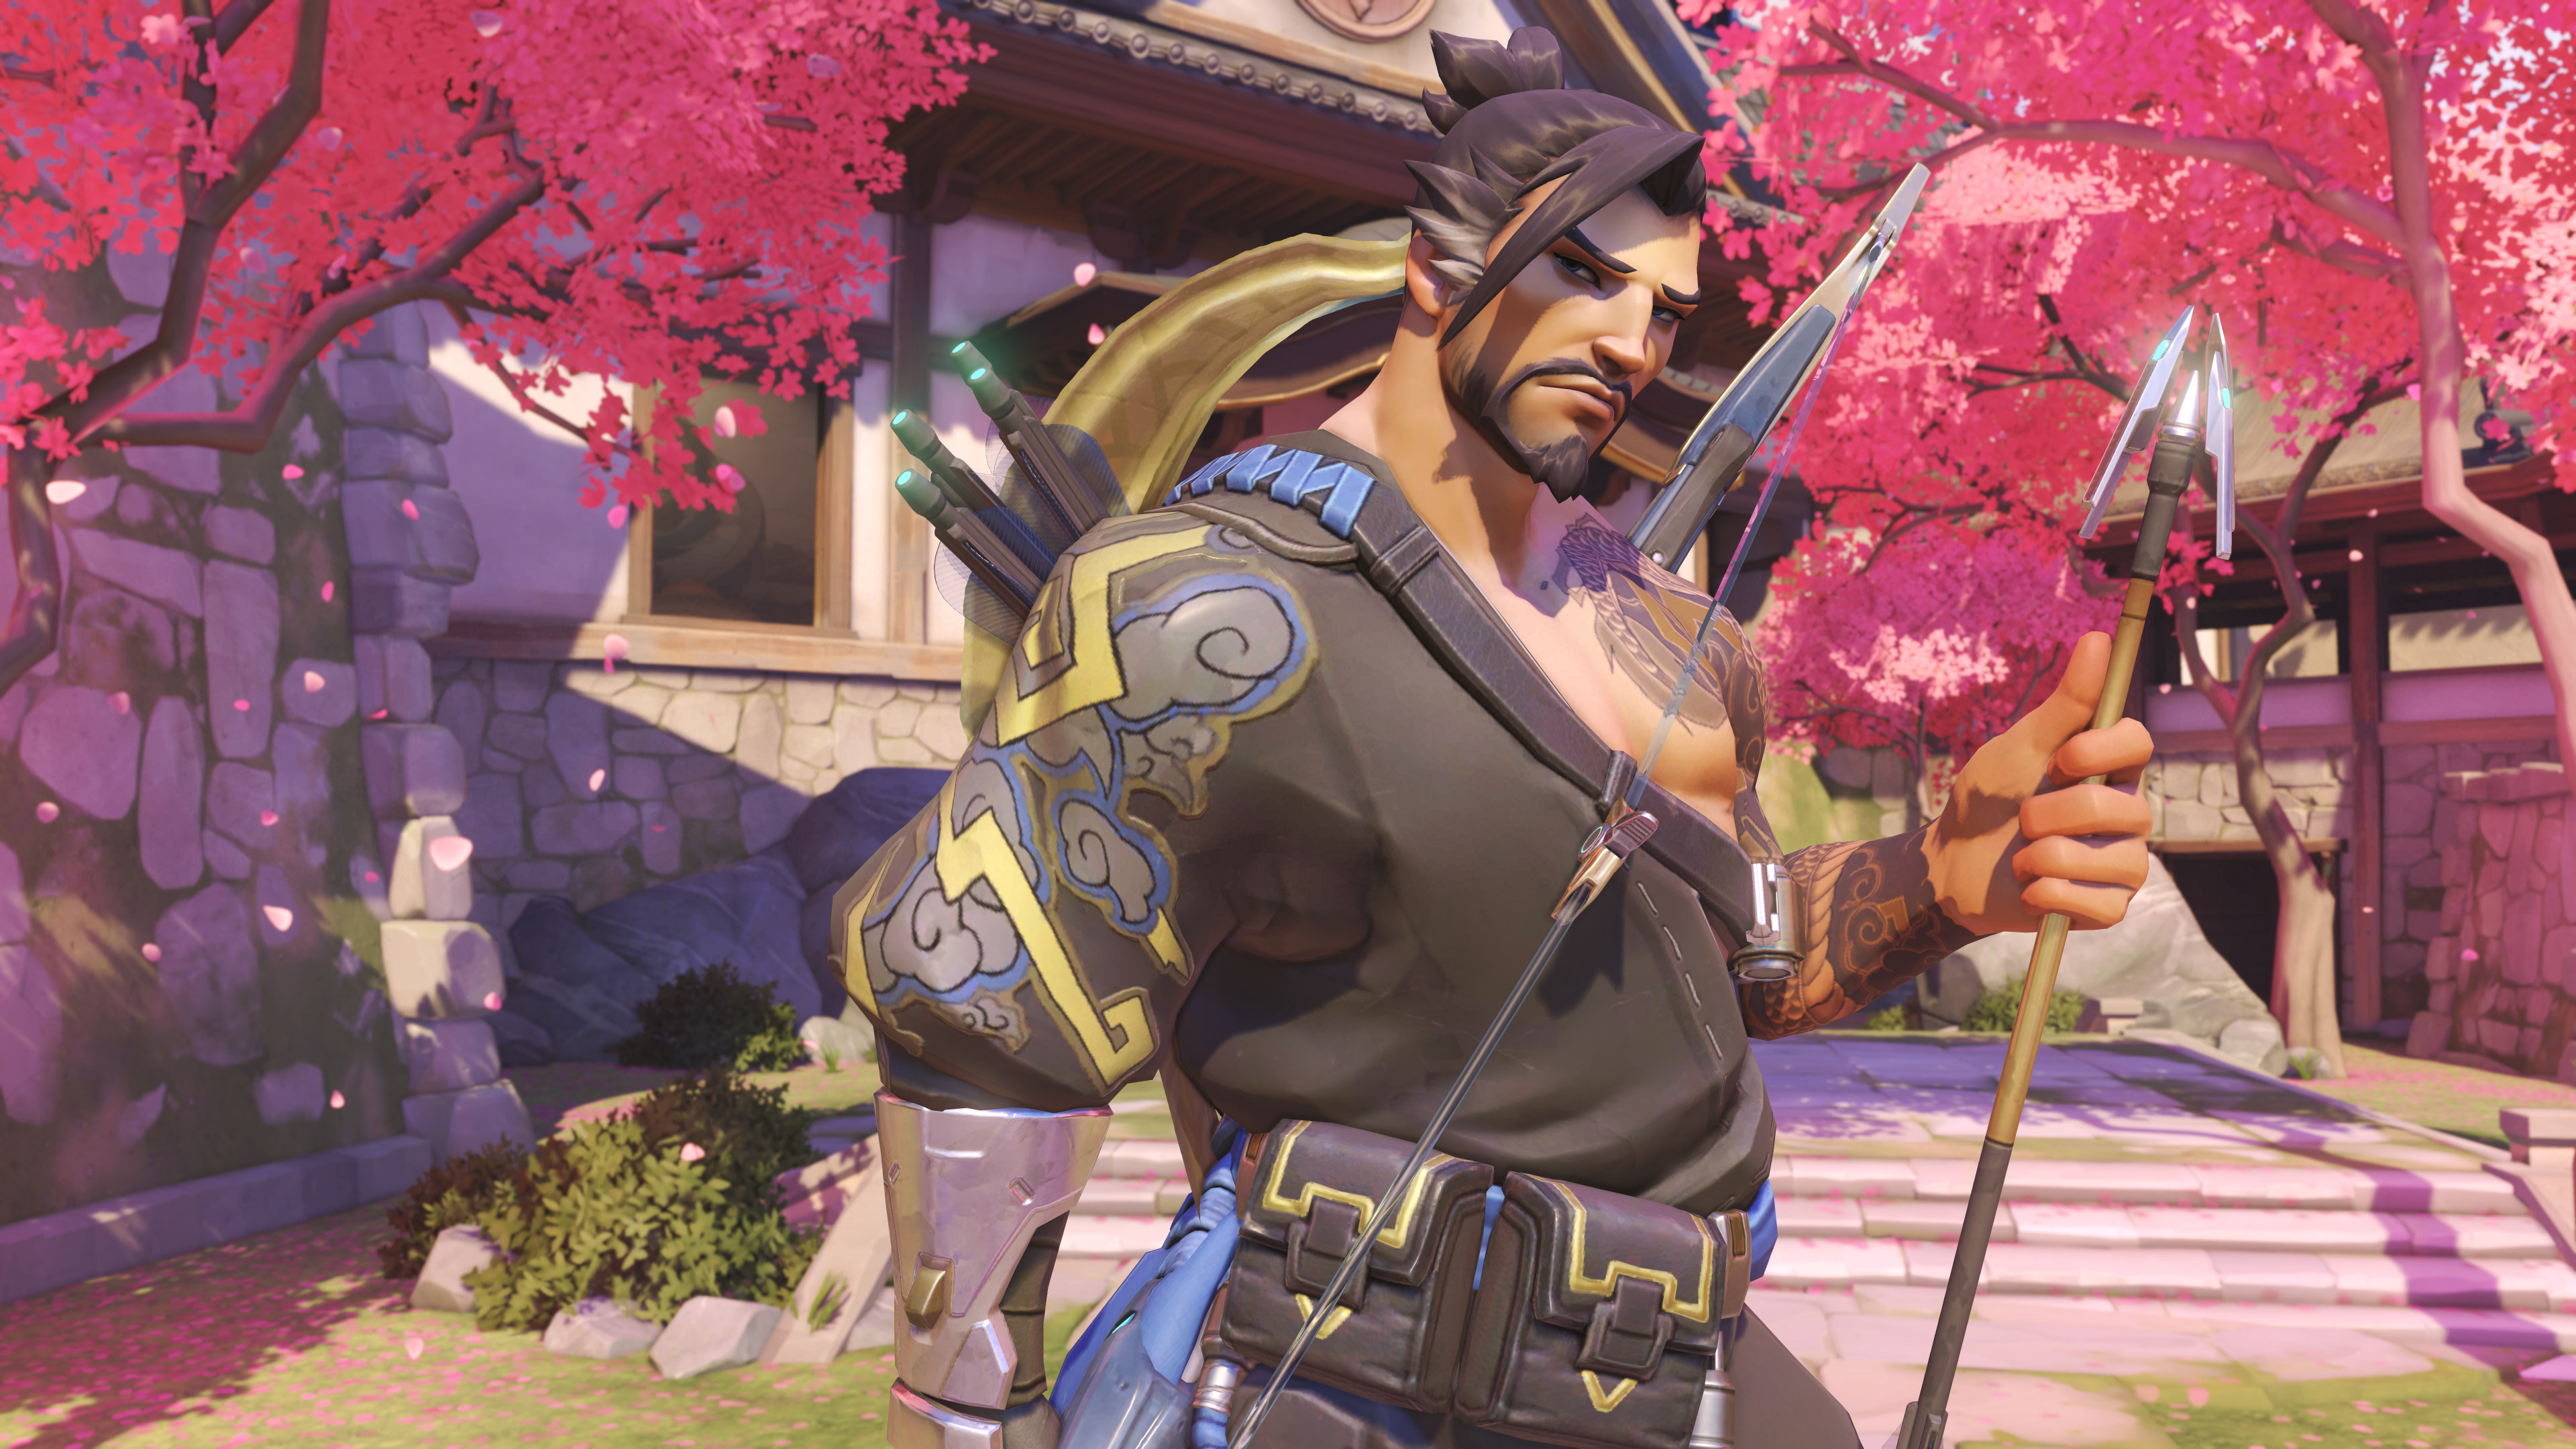 Overwatch: Hanzo by Felix5314 on DeviantArt